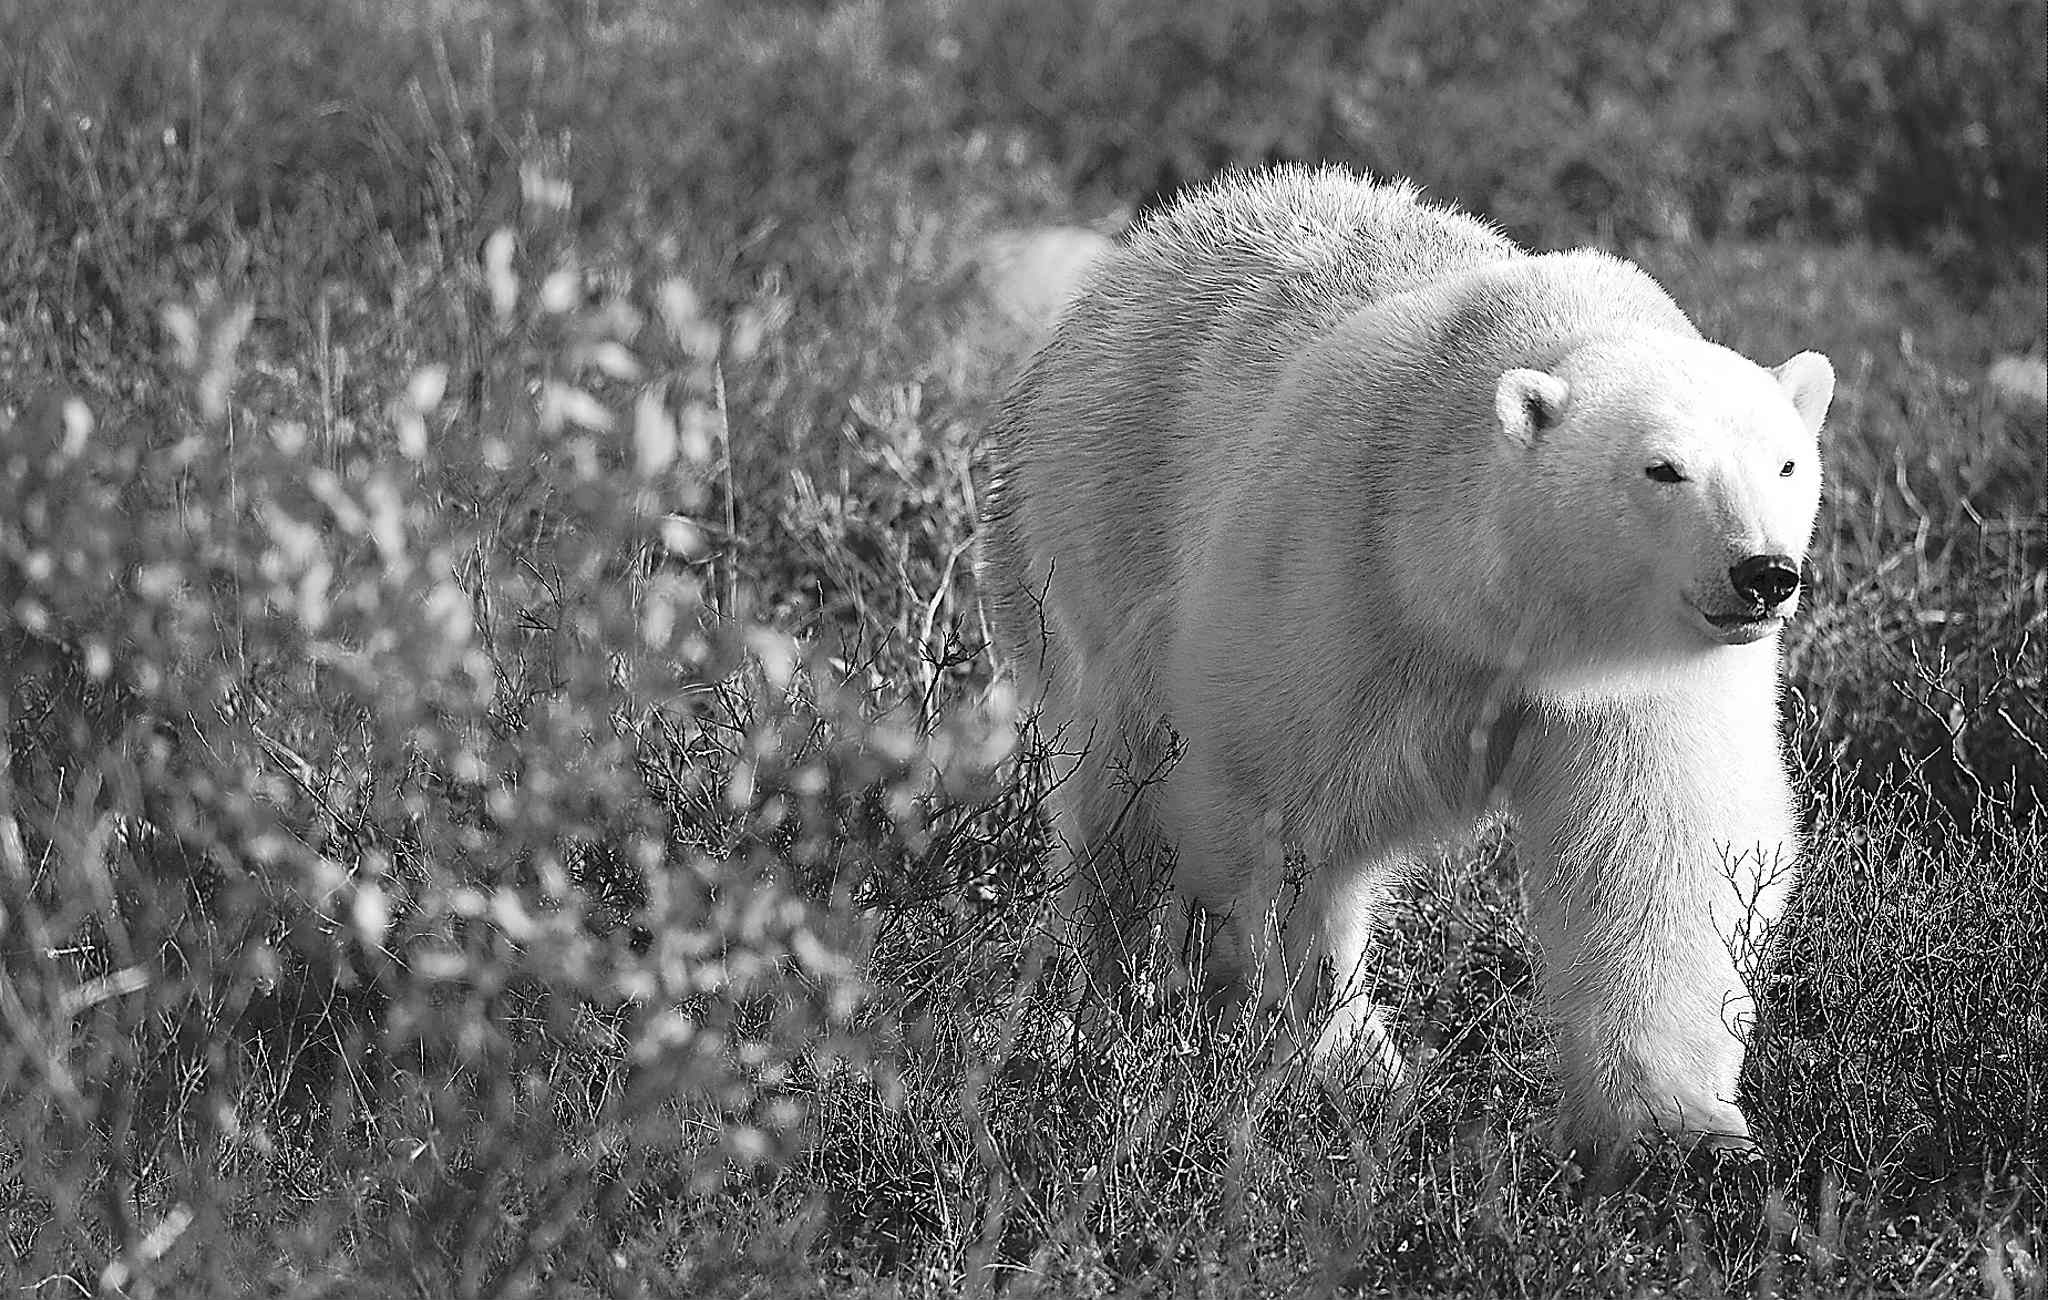 Natural Habitat Adventures has donated trips to see the polar bears to other causes in the past, but the chance to go with a 100-year-old woman doesn't come along too often.